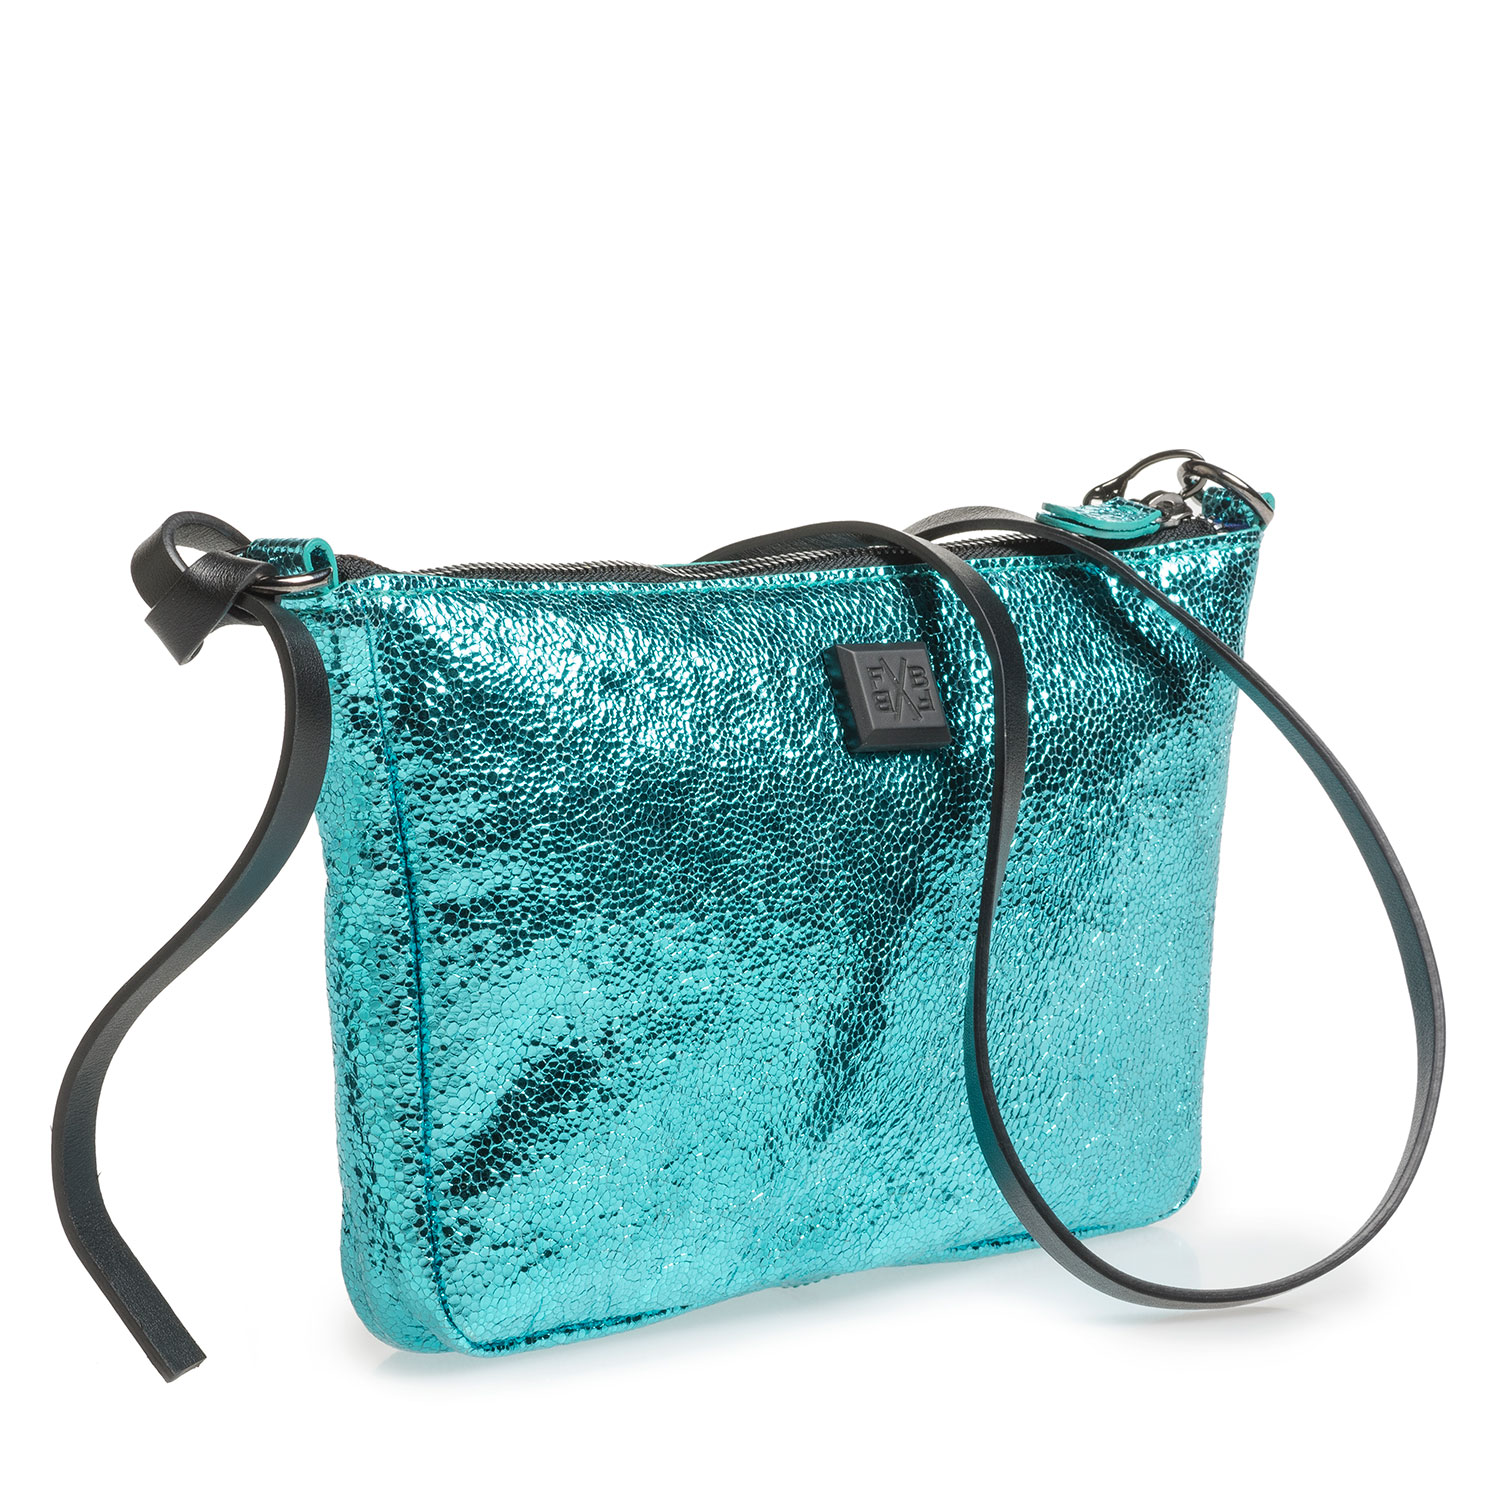 89019/10 - Light blue leather bag with metallic print